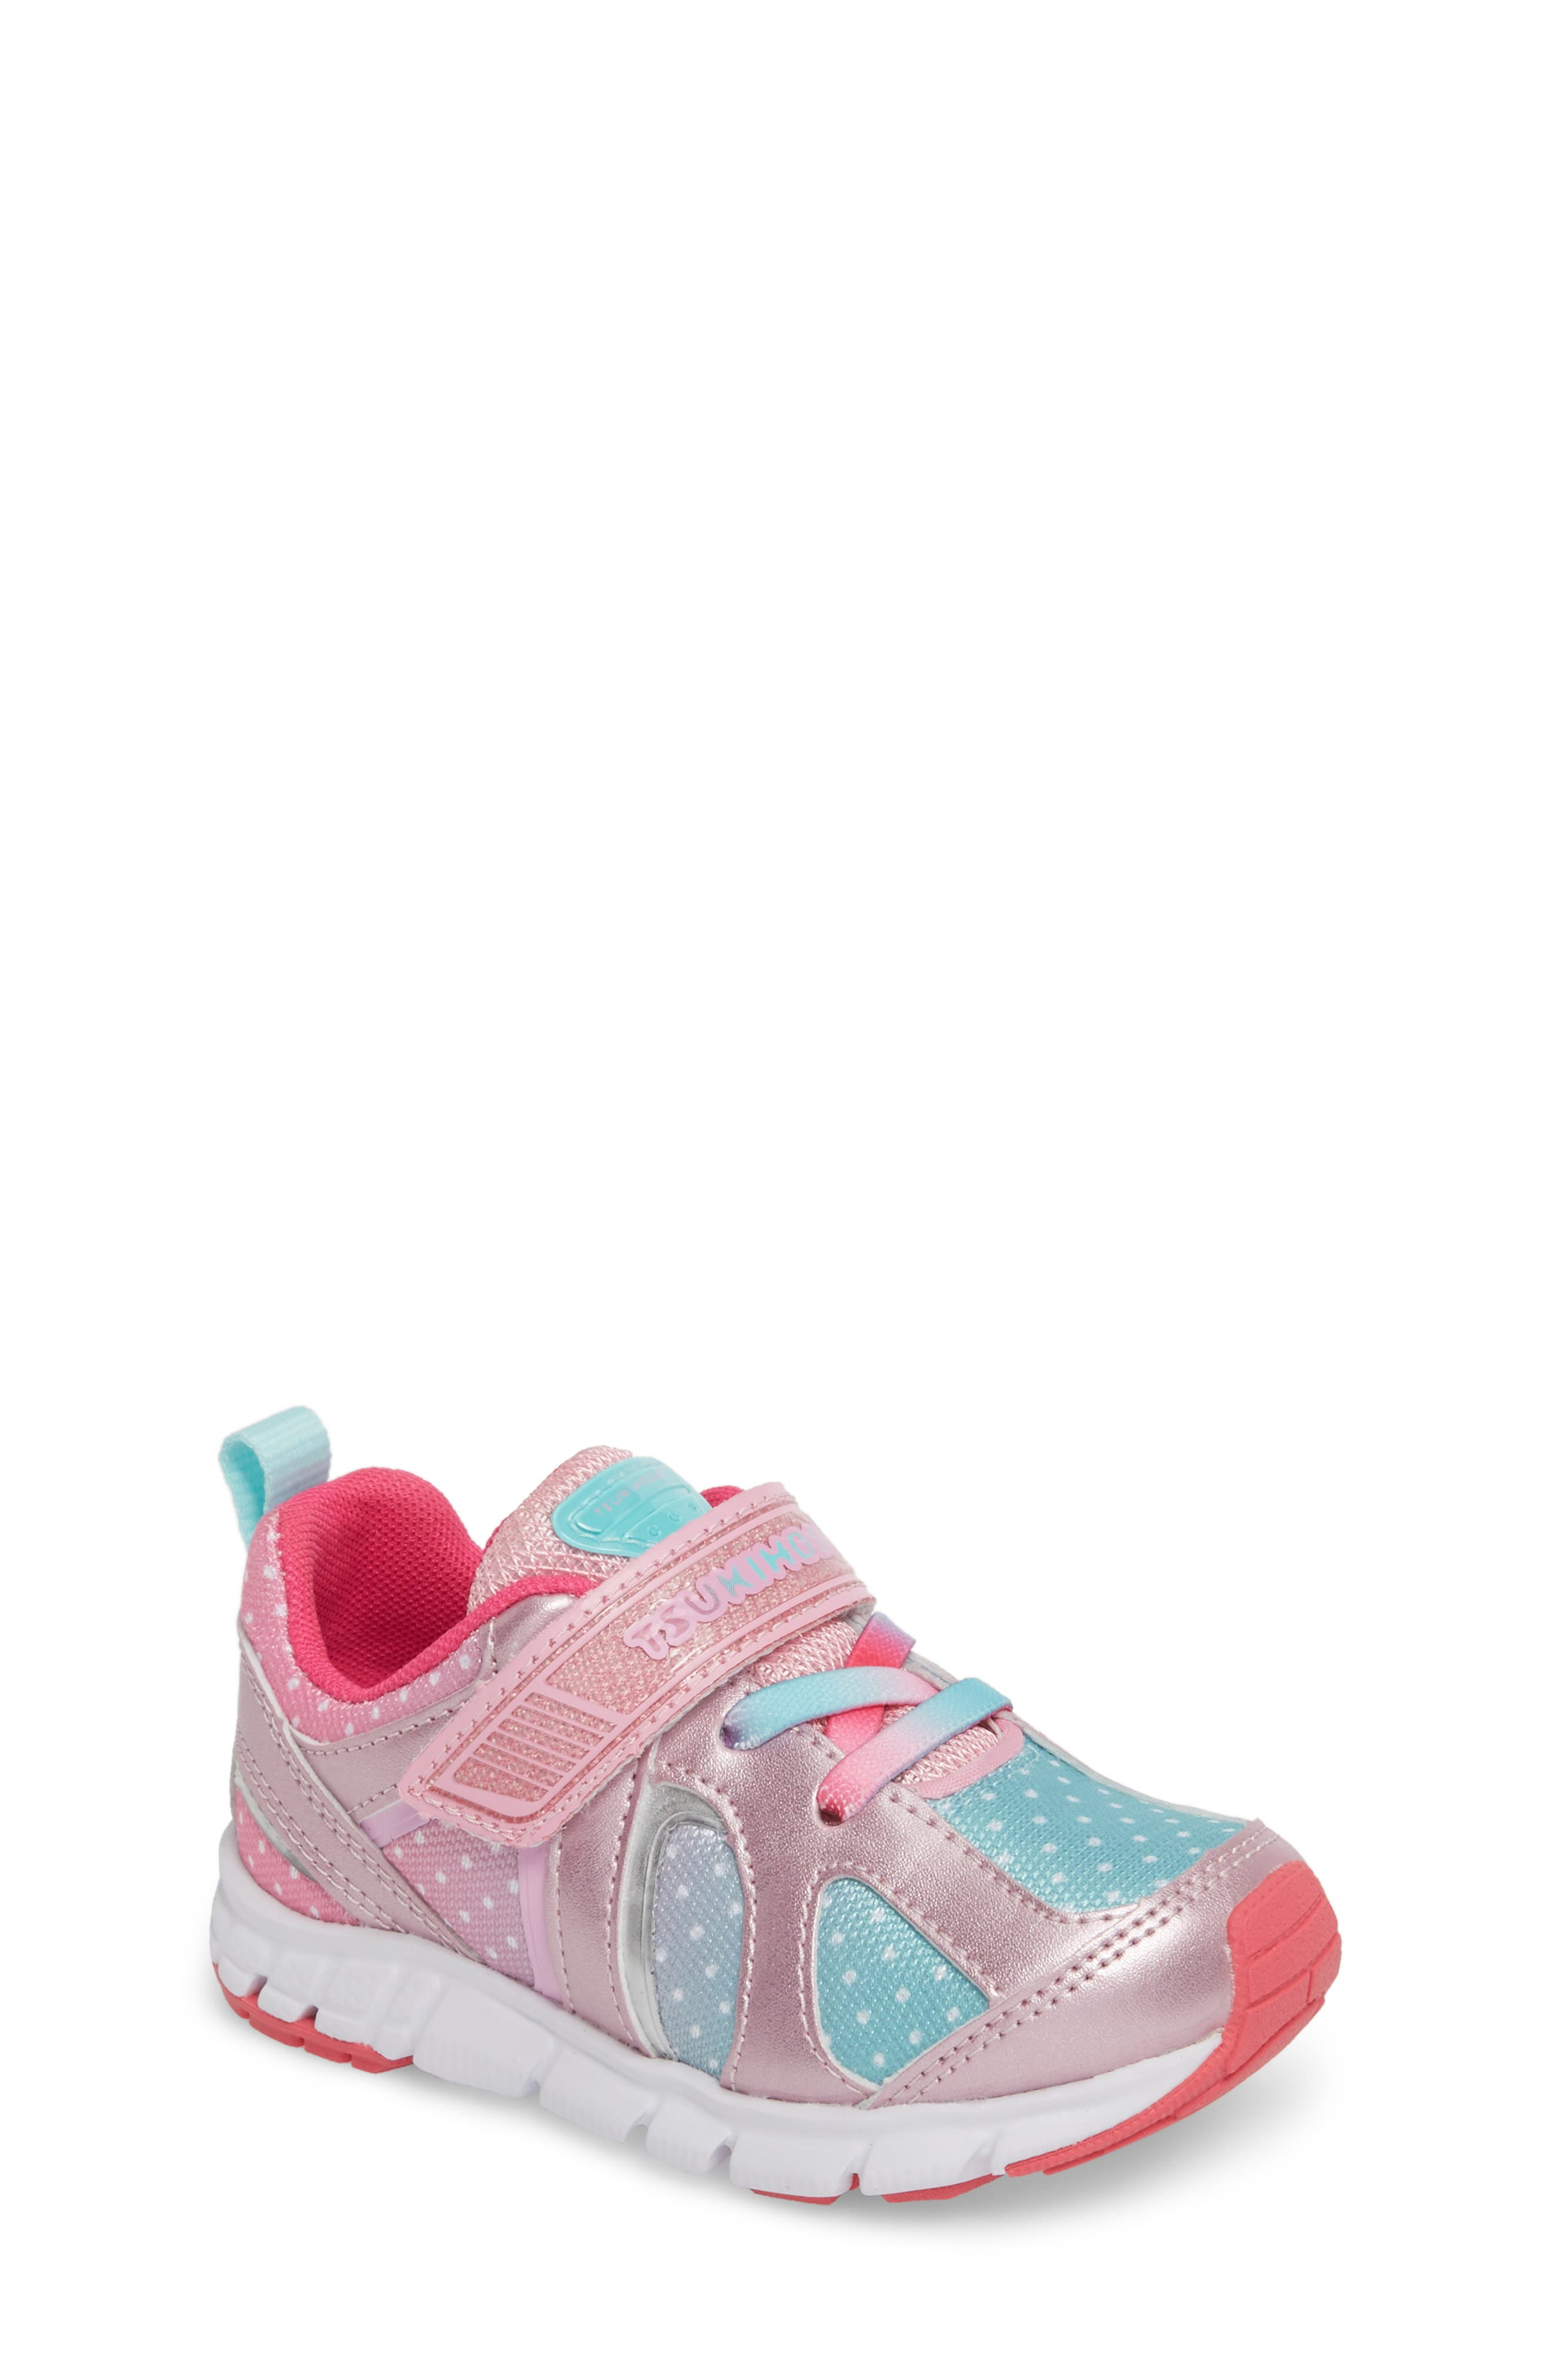 TSUKIHOSHI, Rainbow Washable Sneaker, Main thumbnail 1, color, ROSE/ MINT